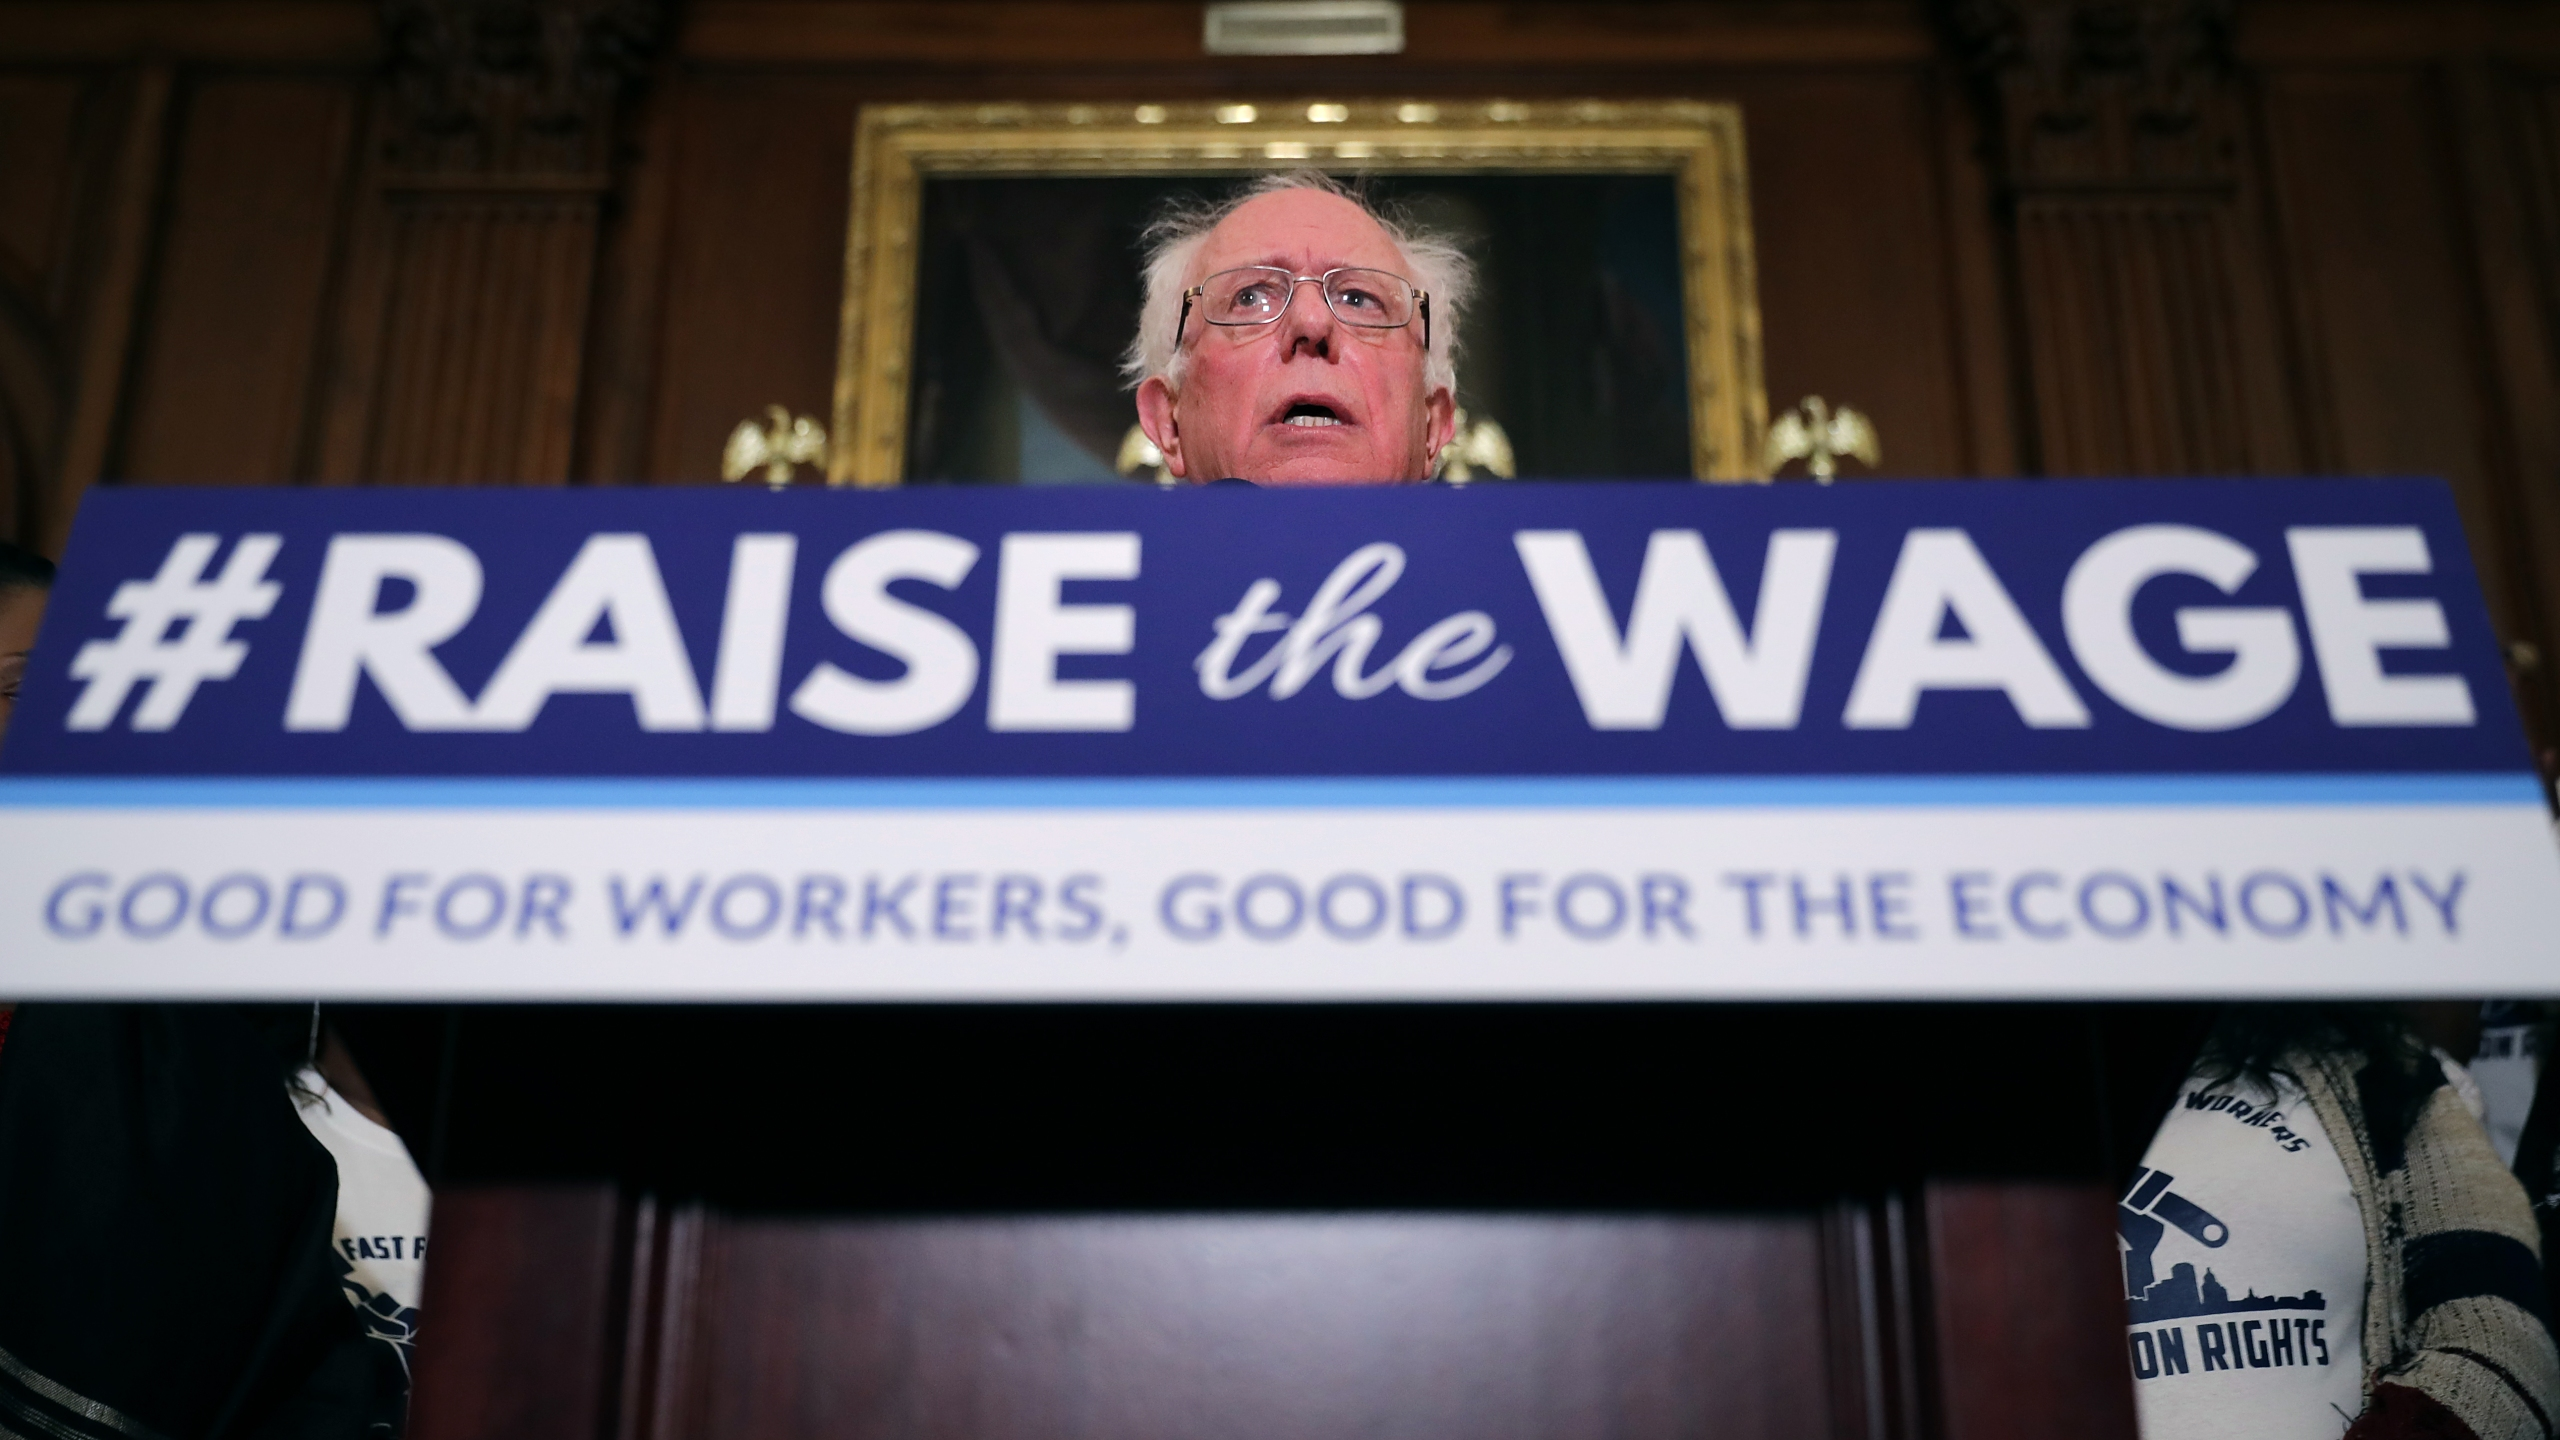 Sen. Bernie Sanders (I-VT) speaks during an event to introduce the Raise The Wage Act in the Rayburn Room at the U.S. Capitol Jan. 16, 2019 in Washington, D.C. (Credit: Chip Somodevilla/Getty Images)